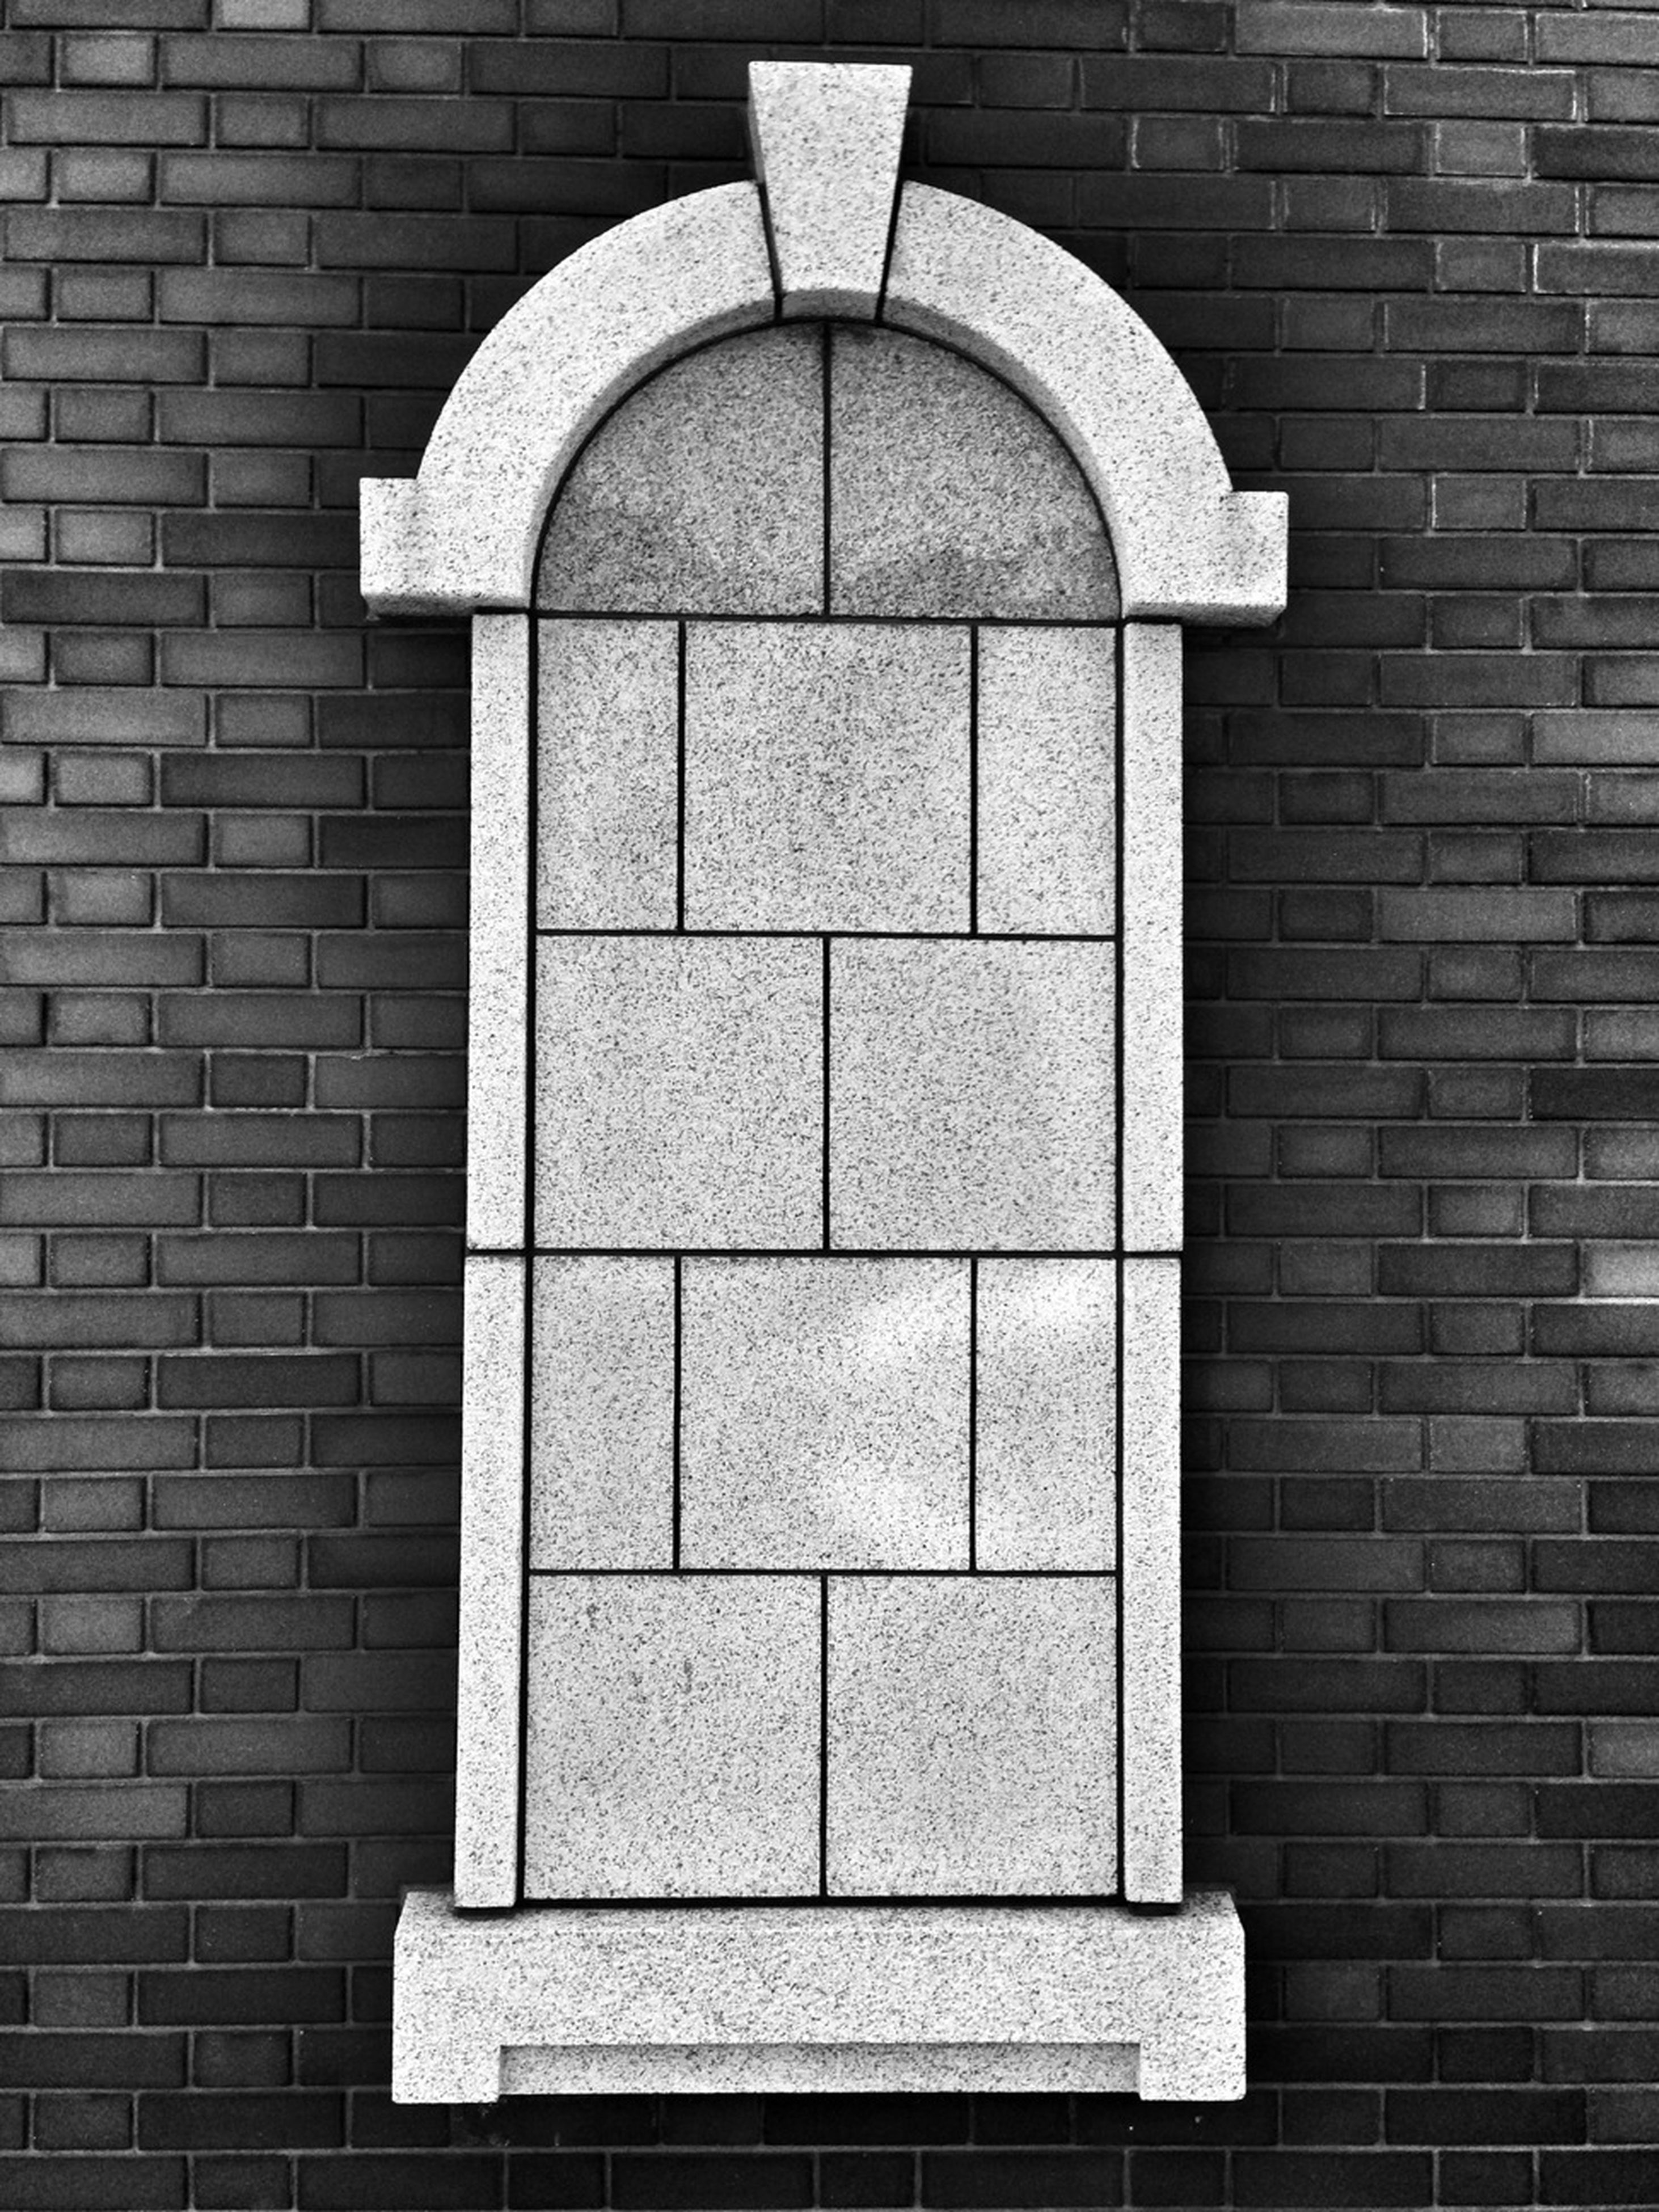 architecture, built structure, building exterior, brick wall, stone wall, arch, wall - building feature, window, brick, history, day, wall, old, outdoors, entrance, facade, no people, low angle view, building, pattern